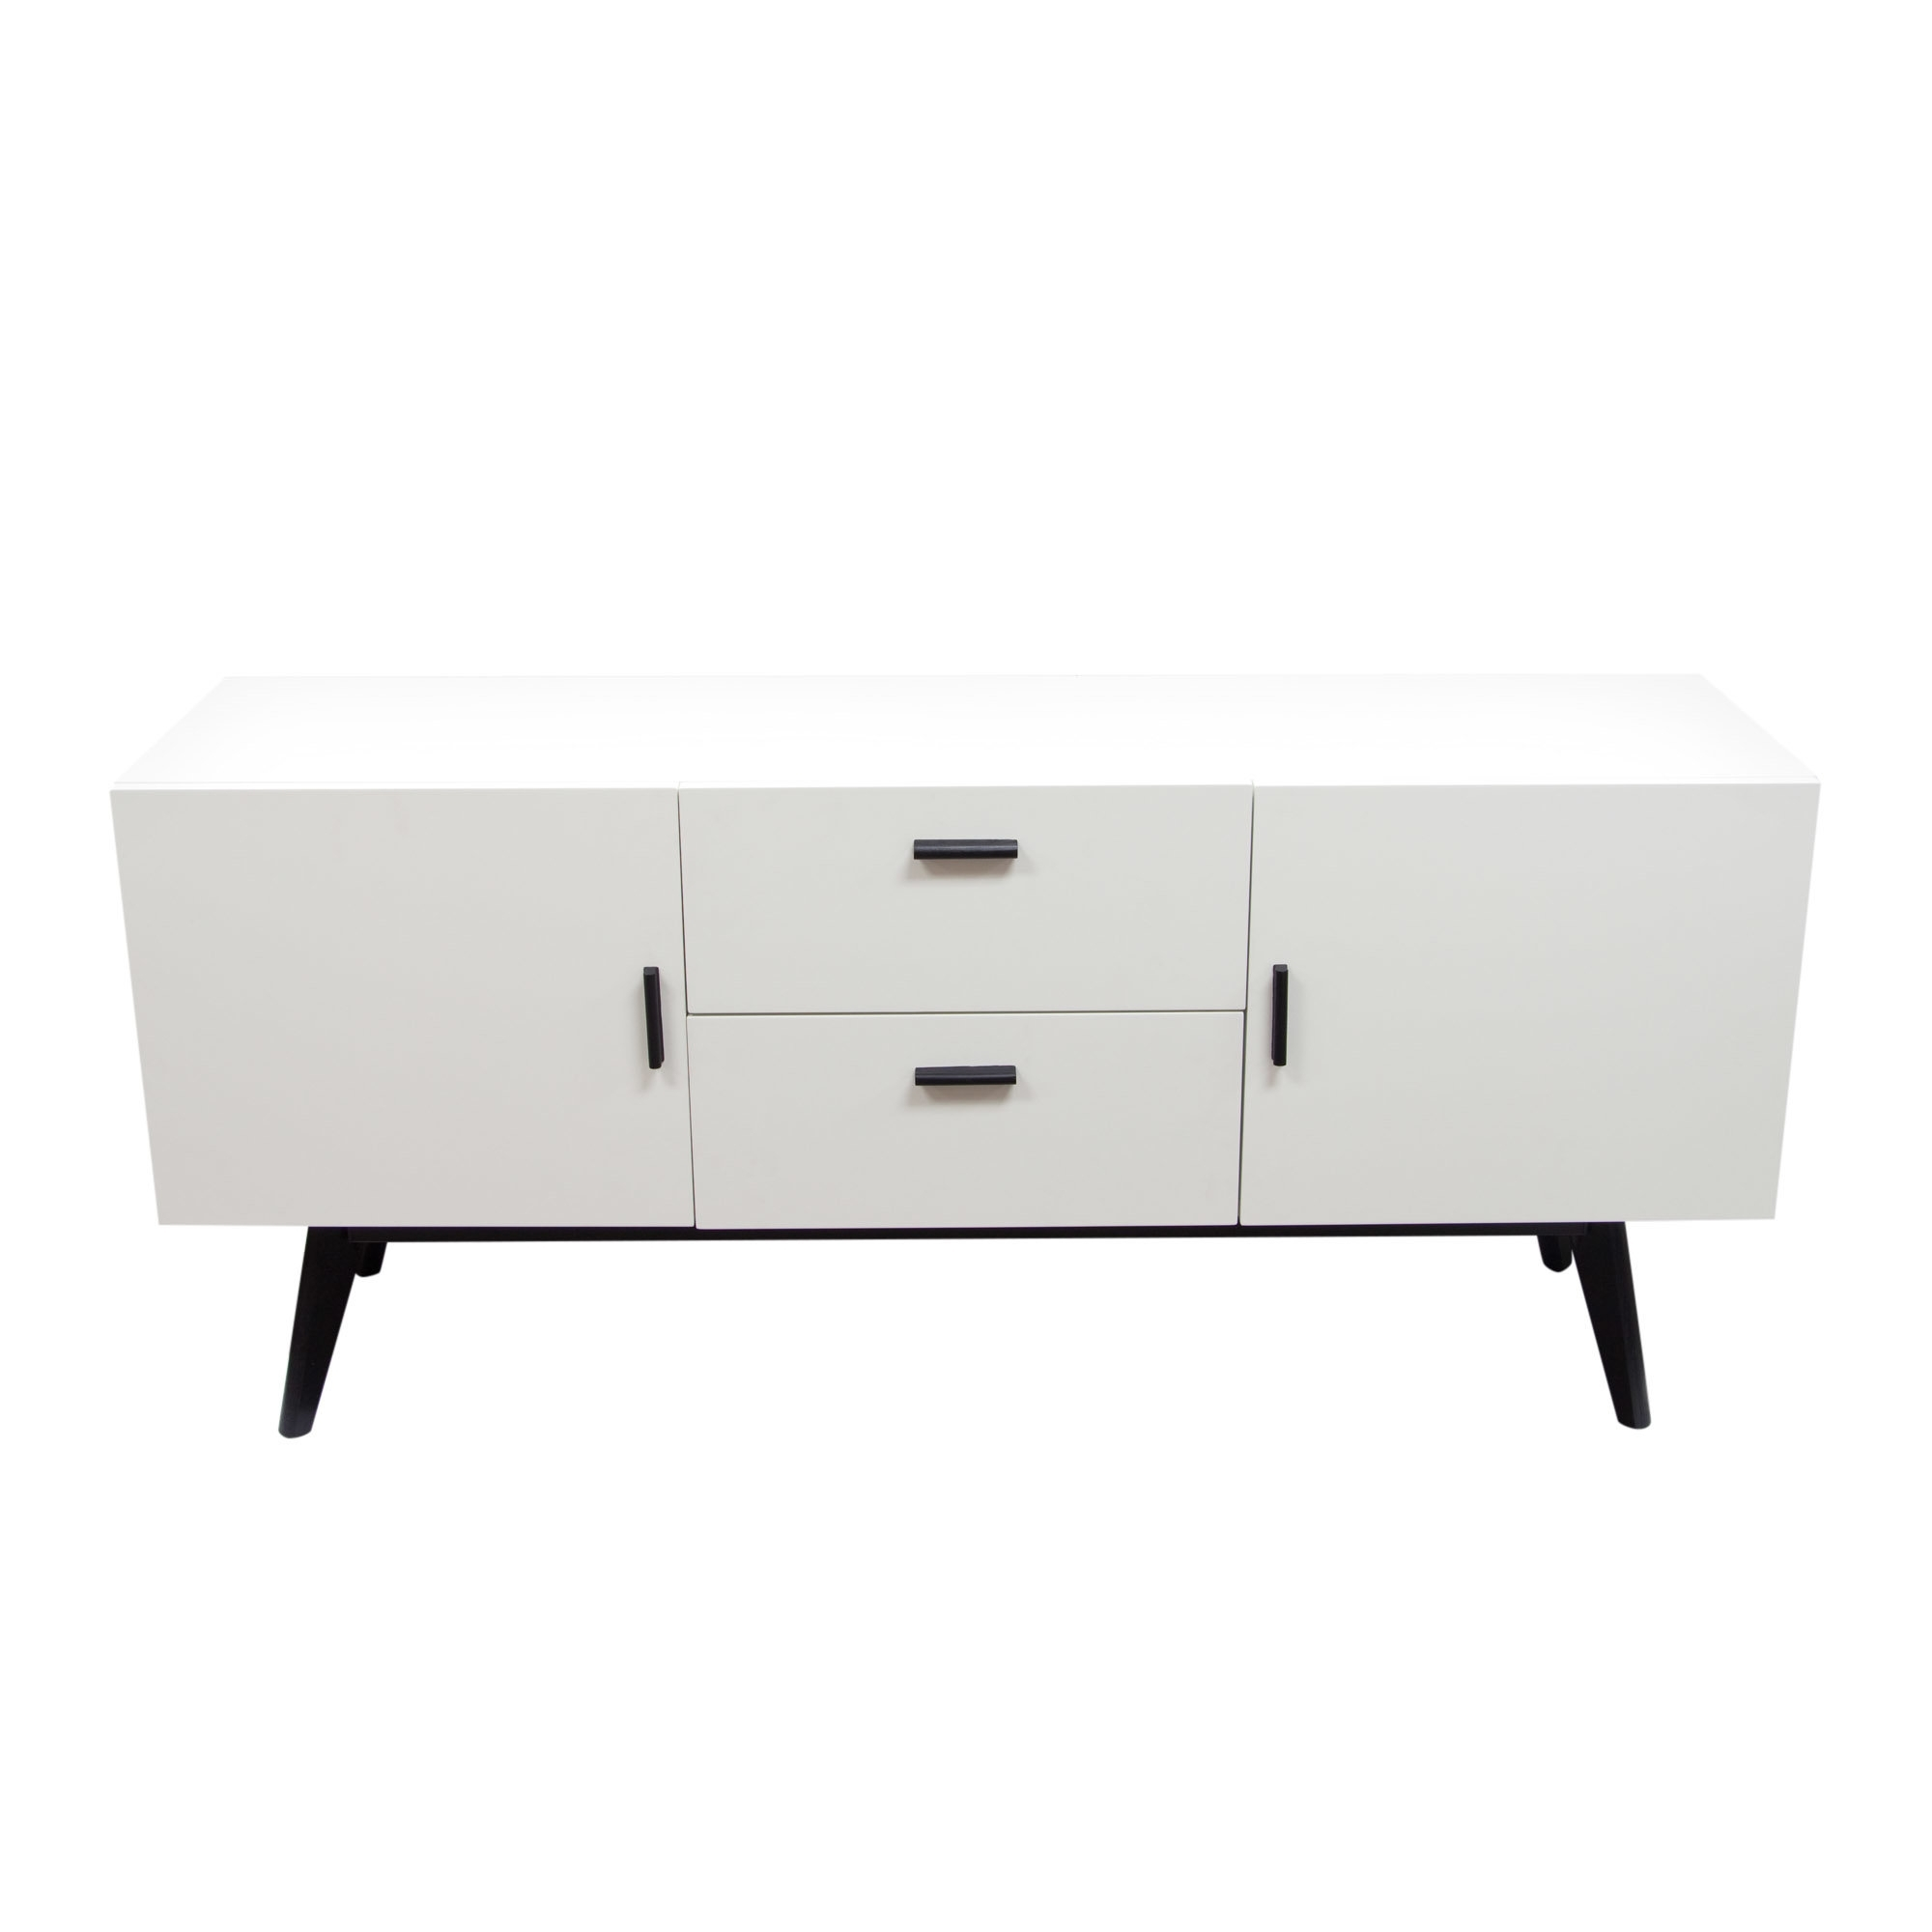 Diamond Sofa Mode Sideboard & Reviews | Wayfair pertaining to 4-Door/4-Drawer Metal Inserts Sideboards (Image 12 of 30)